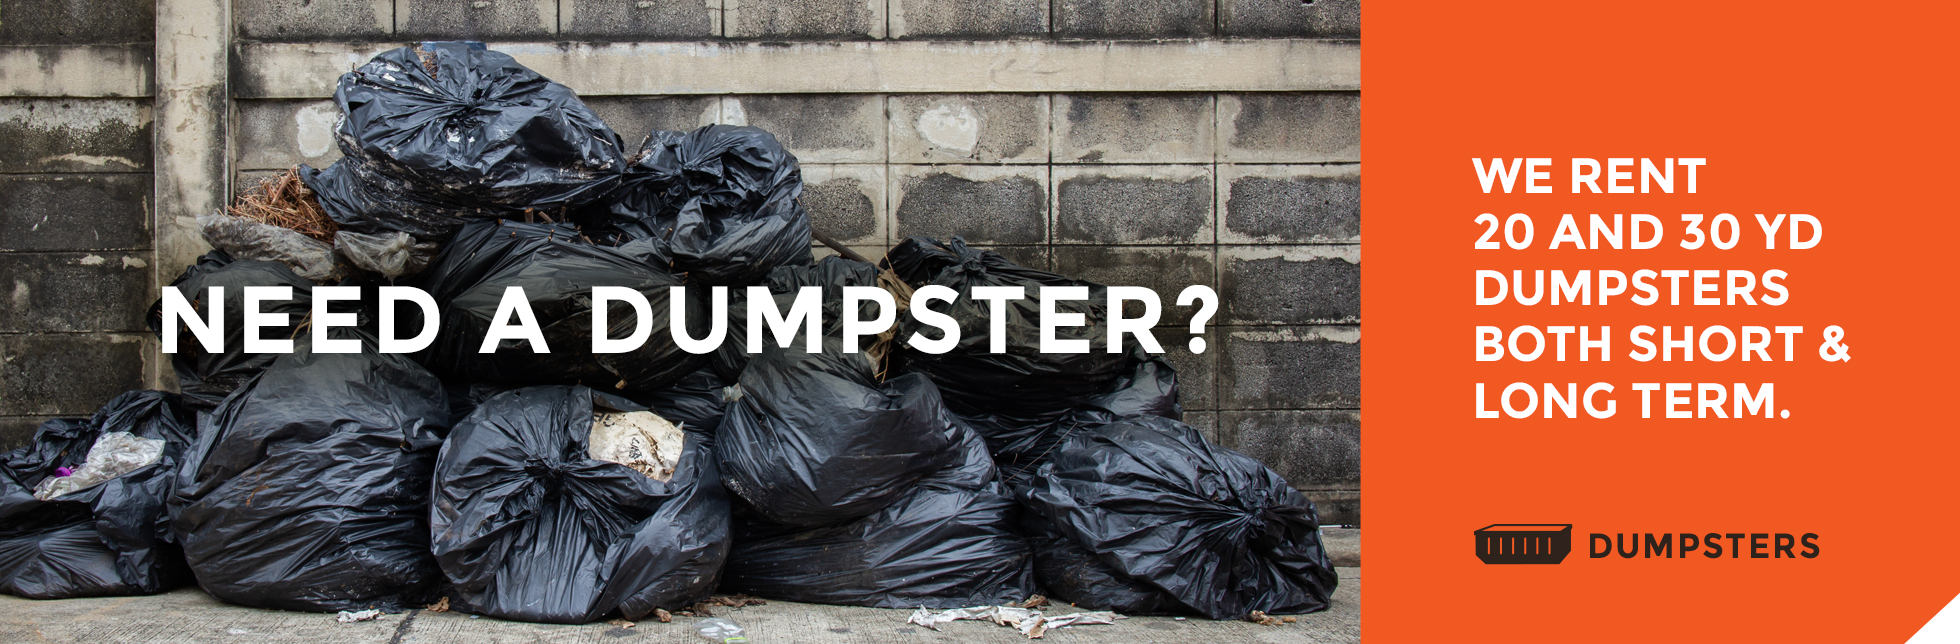 Need a Dumpster Rental?